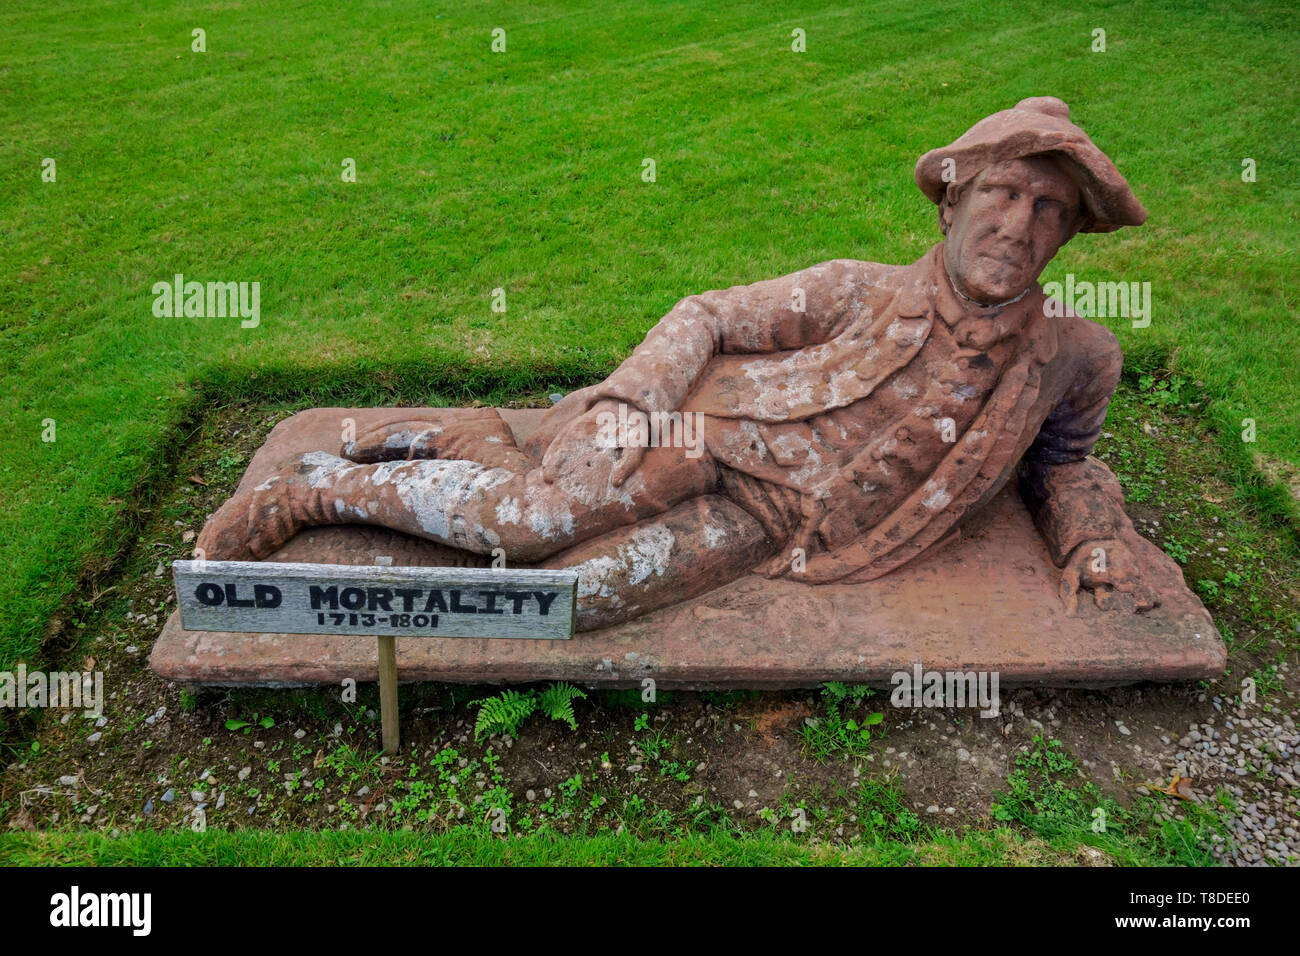 Statue of Old Mortality (Robert Paterson 1716-1801)) outside Newton Stewart Museum, Wigtownshire, Scotland. Sculpted by John Corrie in 1840. - Stock Image